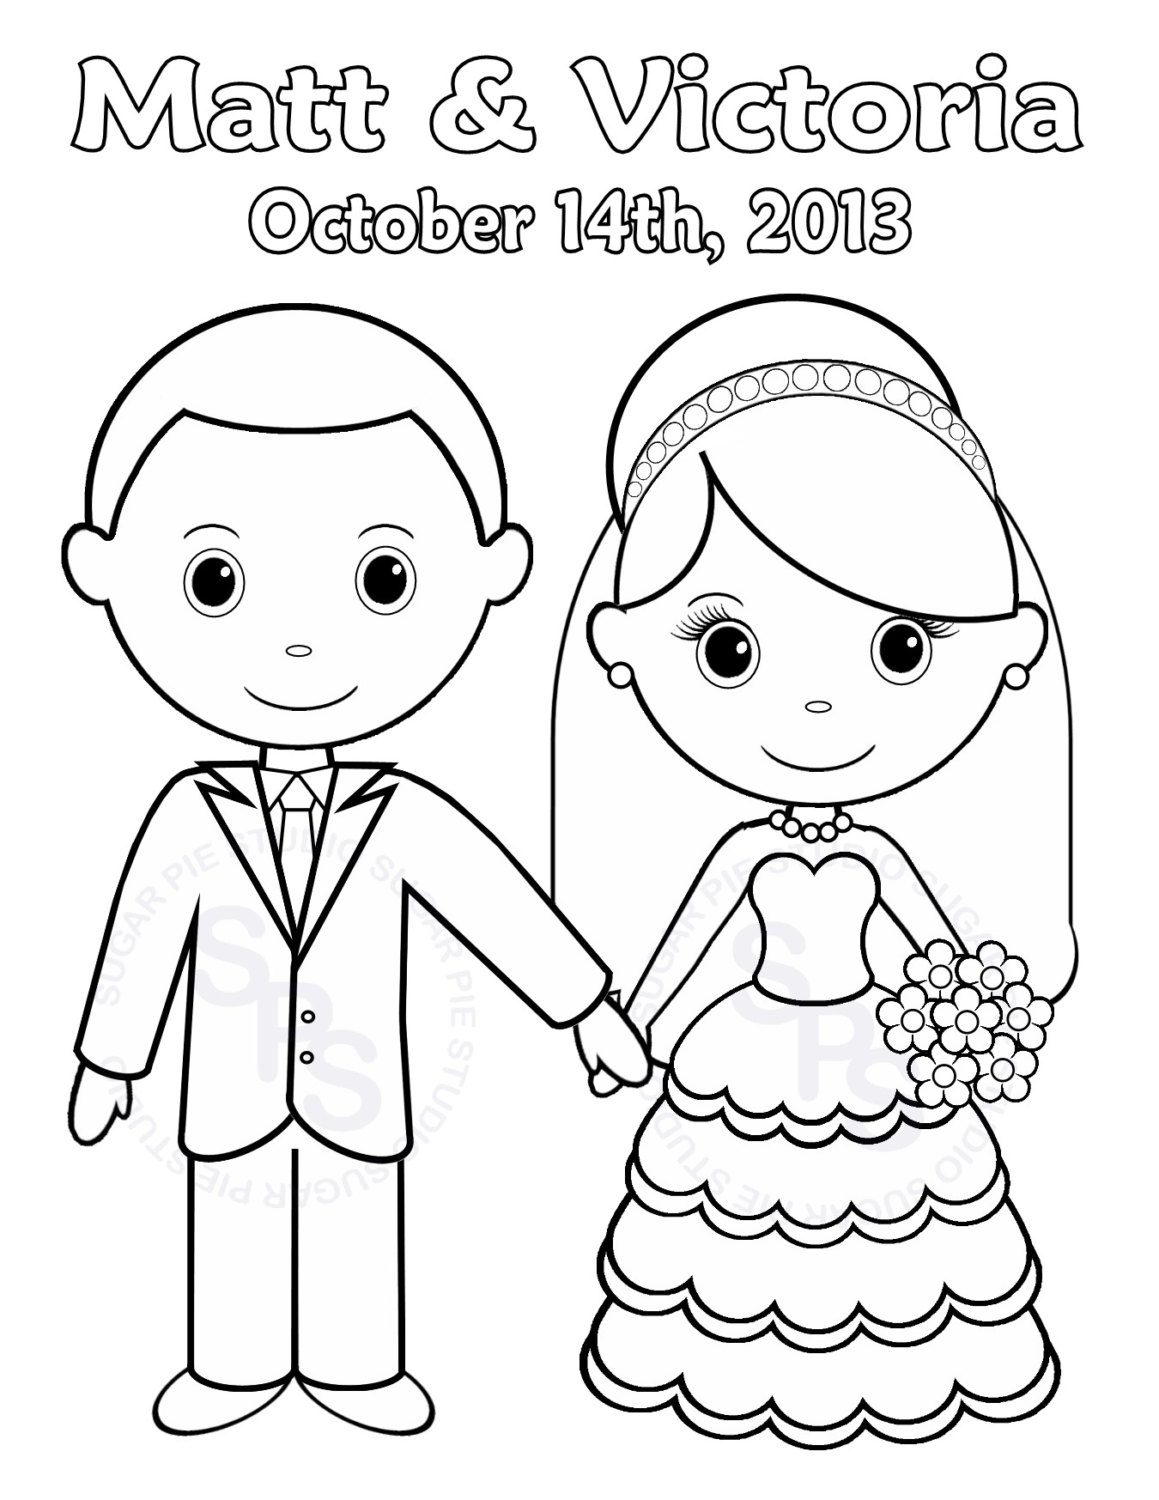 Coloring Pages ~ Printable Inspirationalg Pages Best Of Free - Free Printable Personalized Wedding Coloring Book